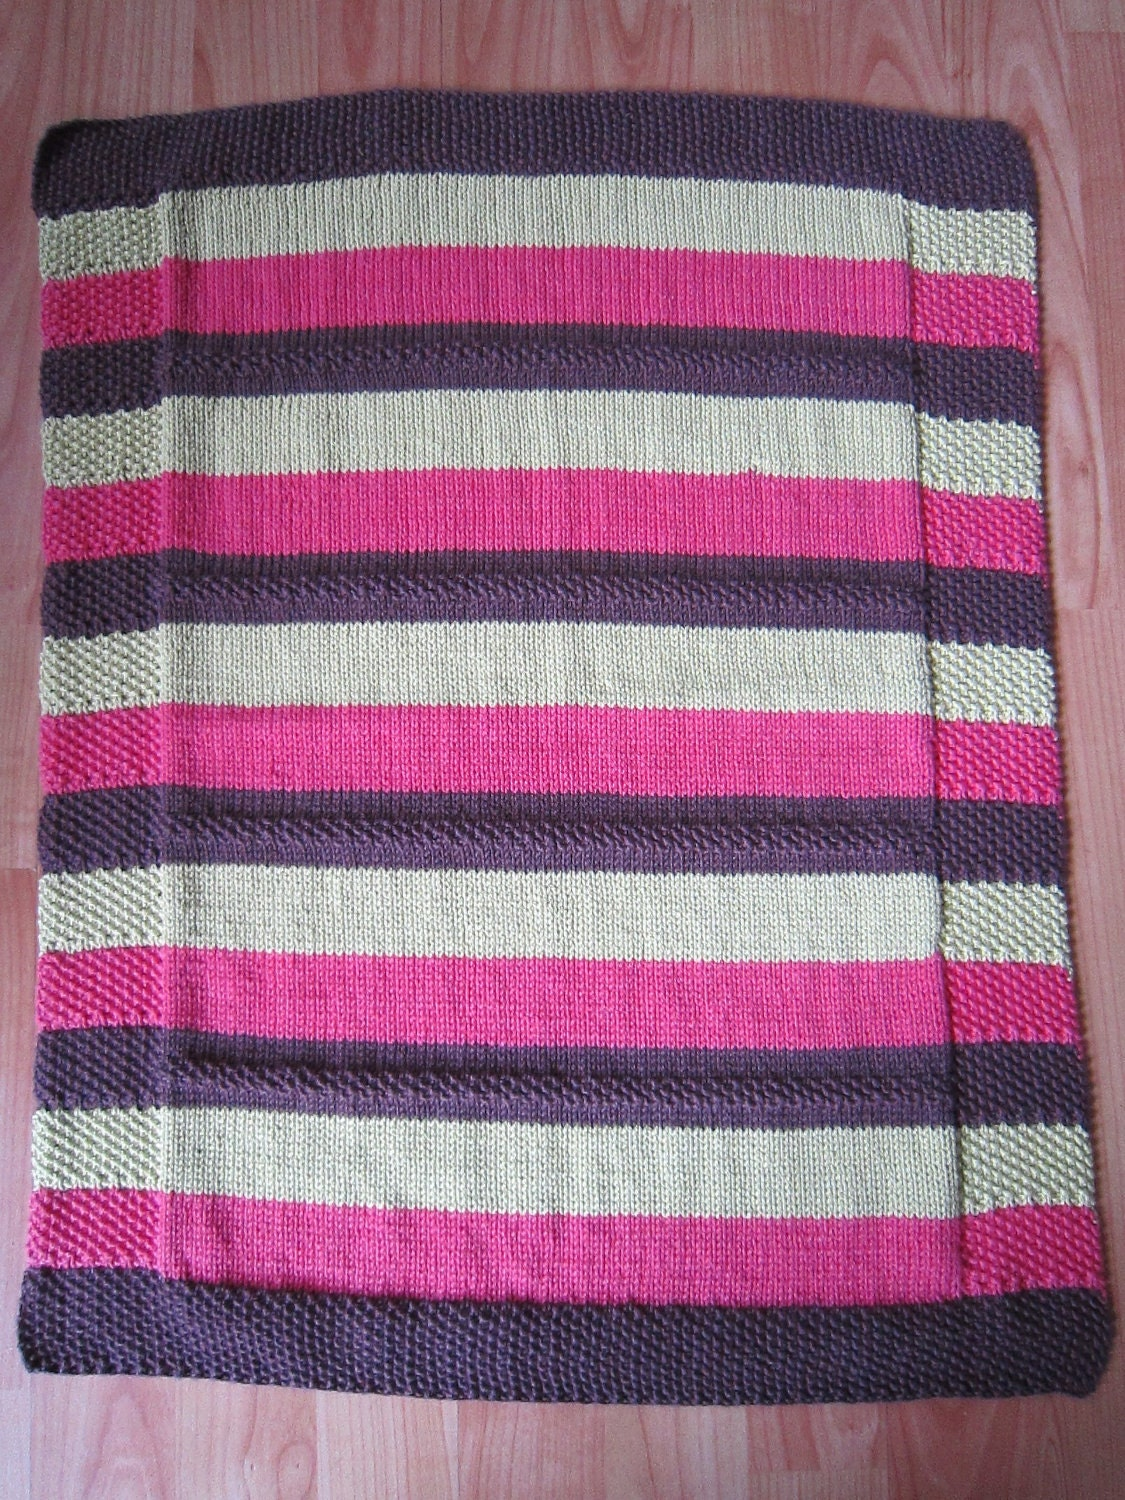 Hand Knitted Striped Wool and Cotton Baby Blanket Carseat